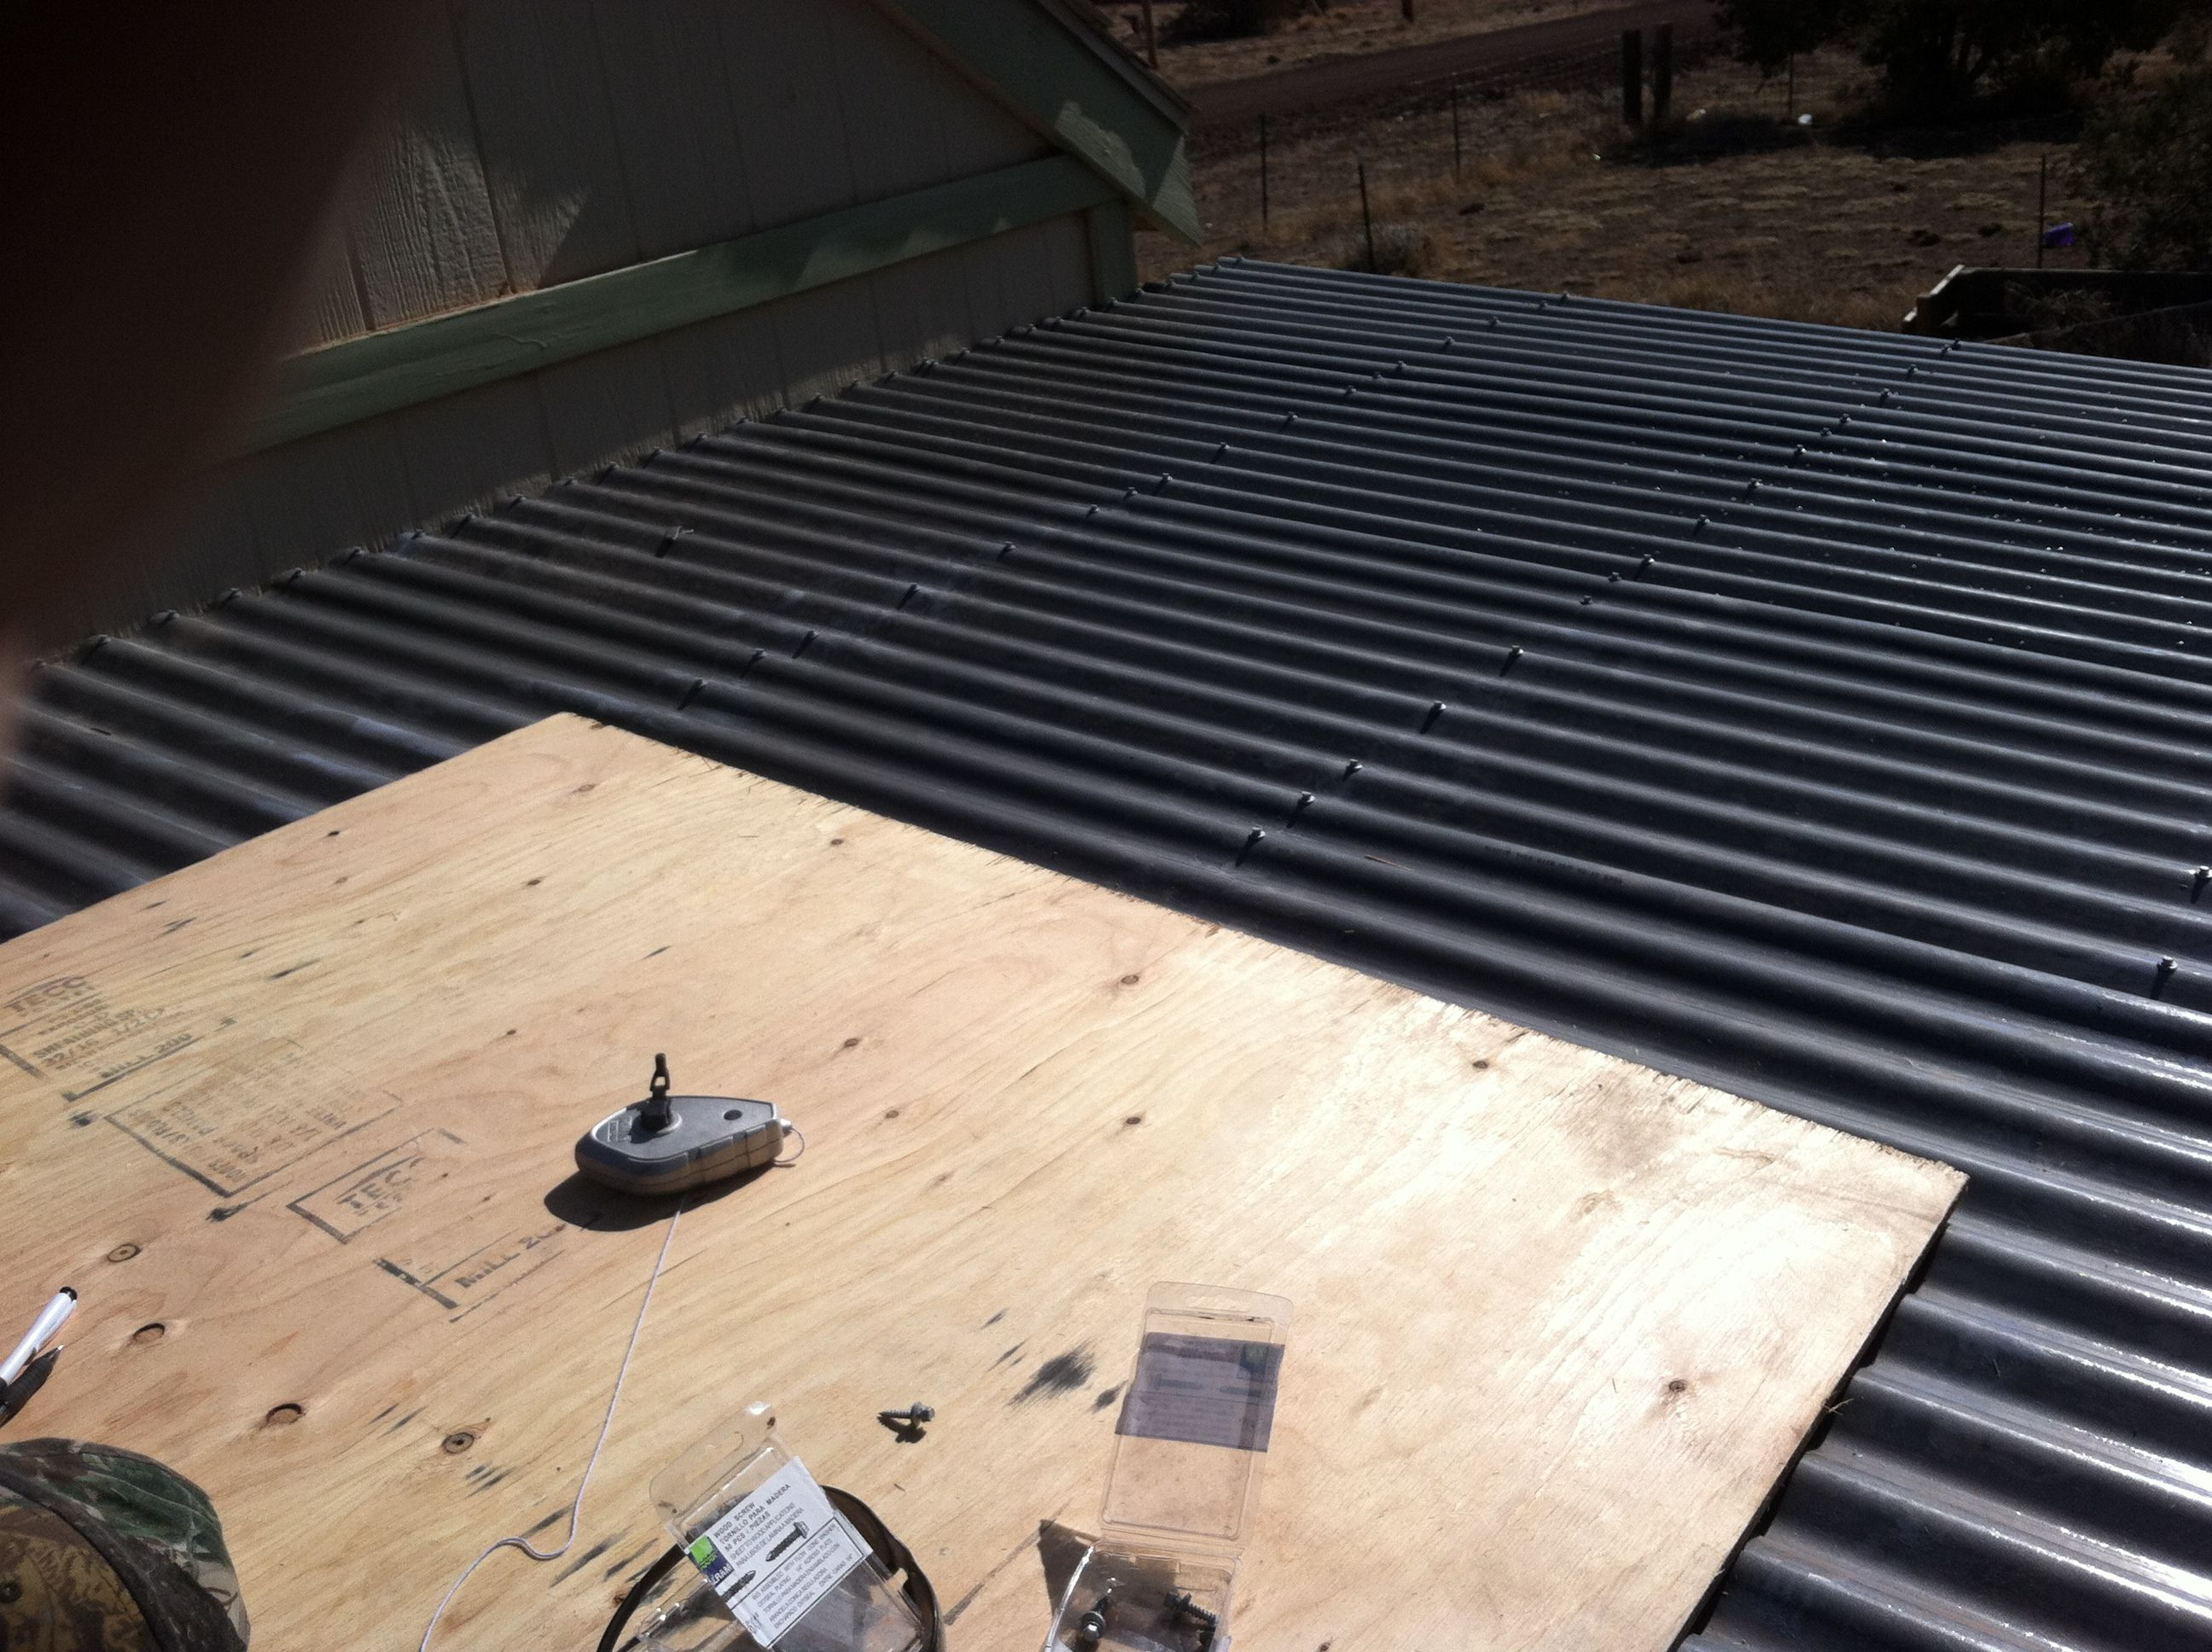 Polycarbonate Roof Panels Installed This Is Really My Only Cost On This Project 100 Bucks Polycarbonate Roof Panels Roof Panels Diy Chicken Coop